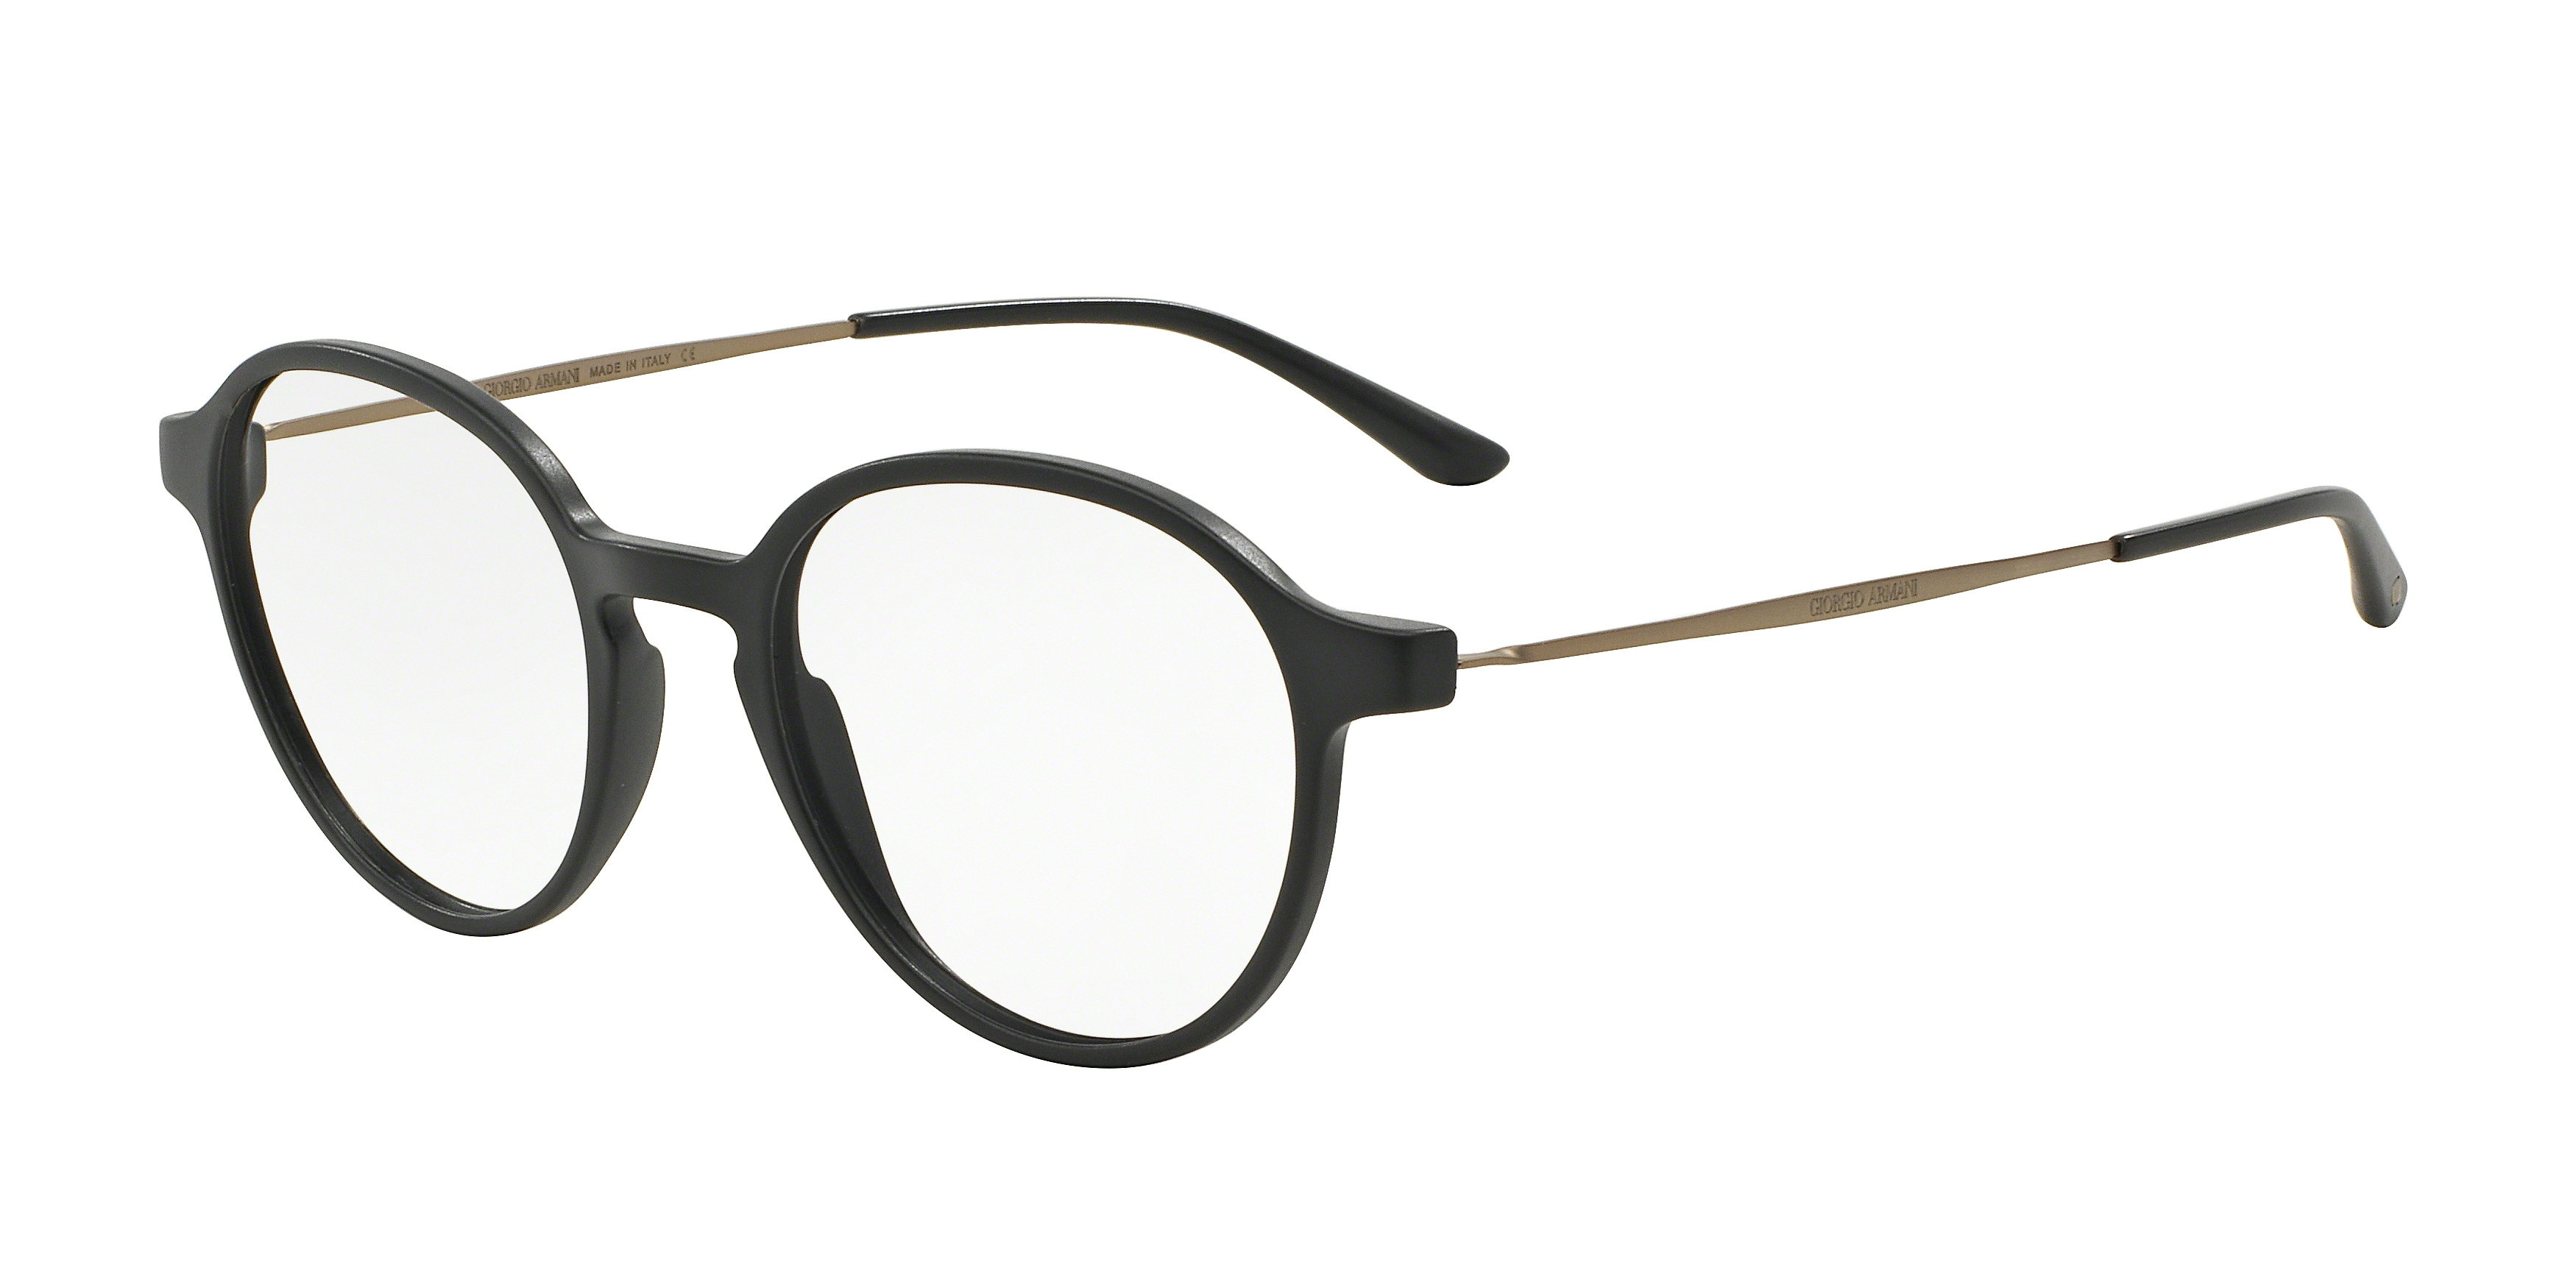 0193622ecd Giorgio Armani Frames Of Life - David Clulow